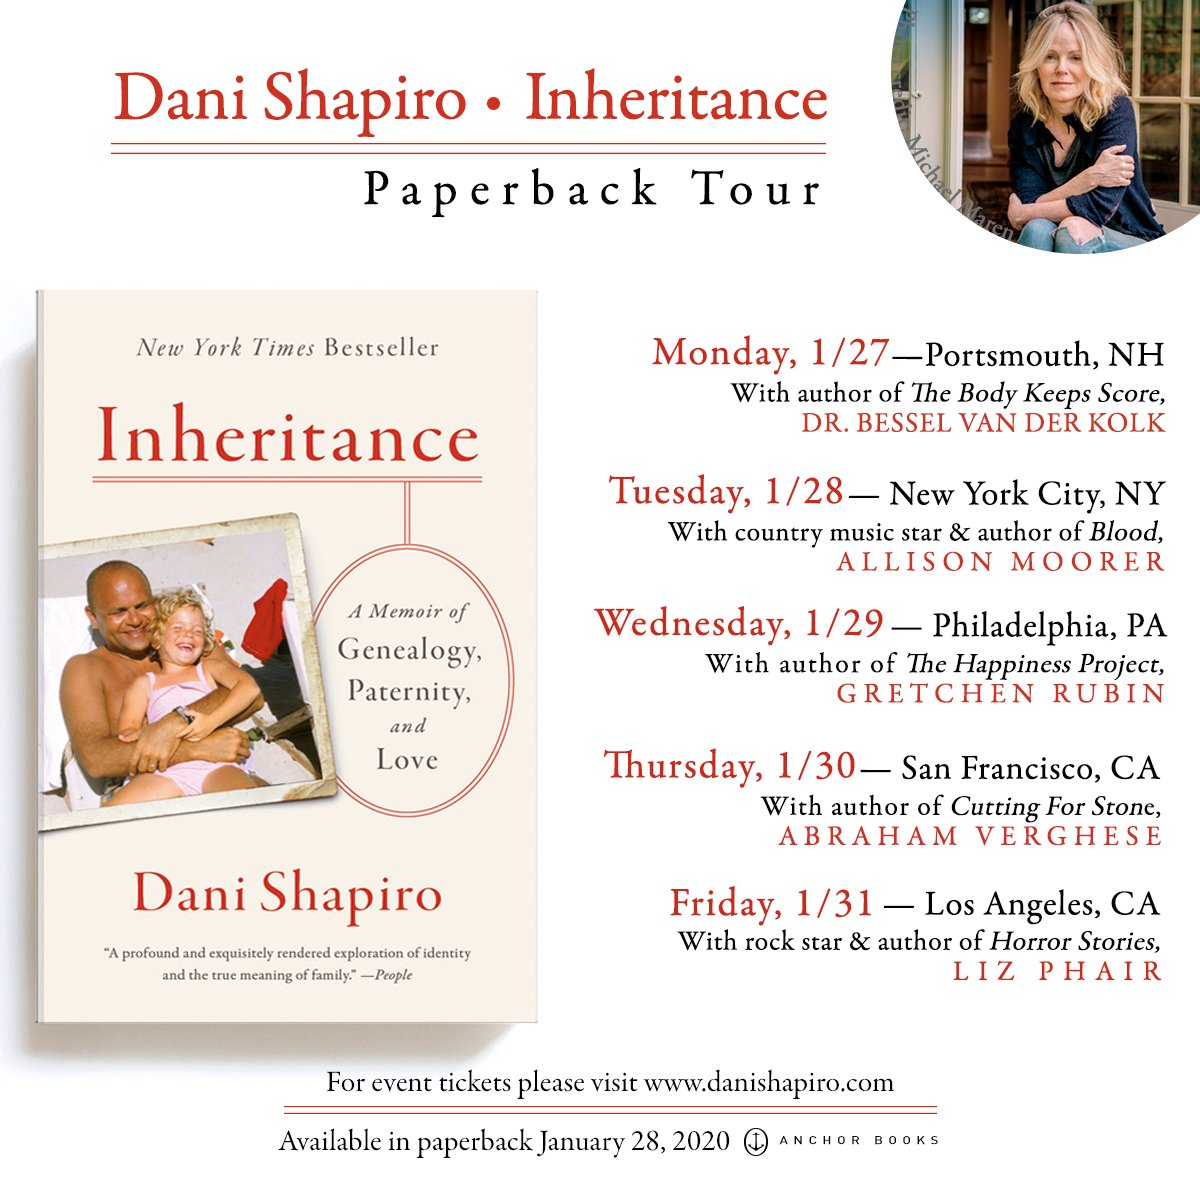 Announcing the amazing lineup for my Inheritance paperback tour!! Five cities, five days, and five amazing conversations with Dr. Bessel van der Kolk, @gretchenrubin, @AllisonMoorer, @cuttingforstone, and @PhizLair!!!